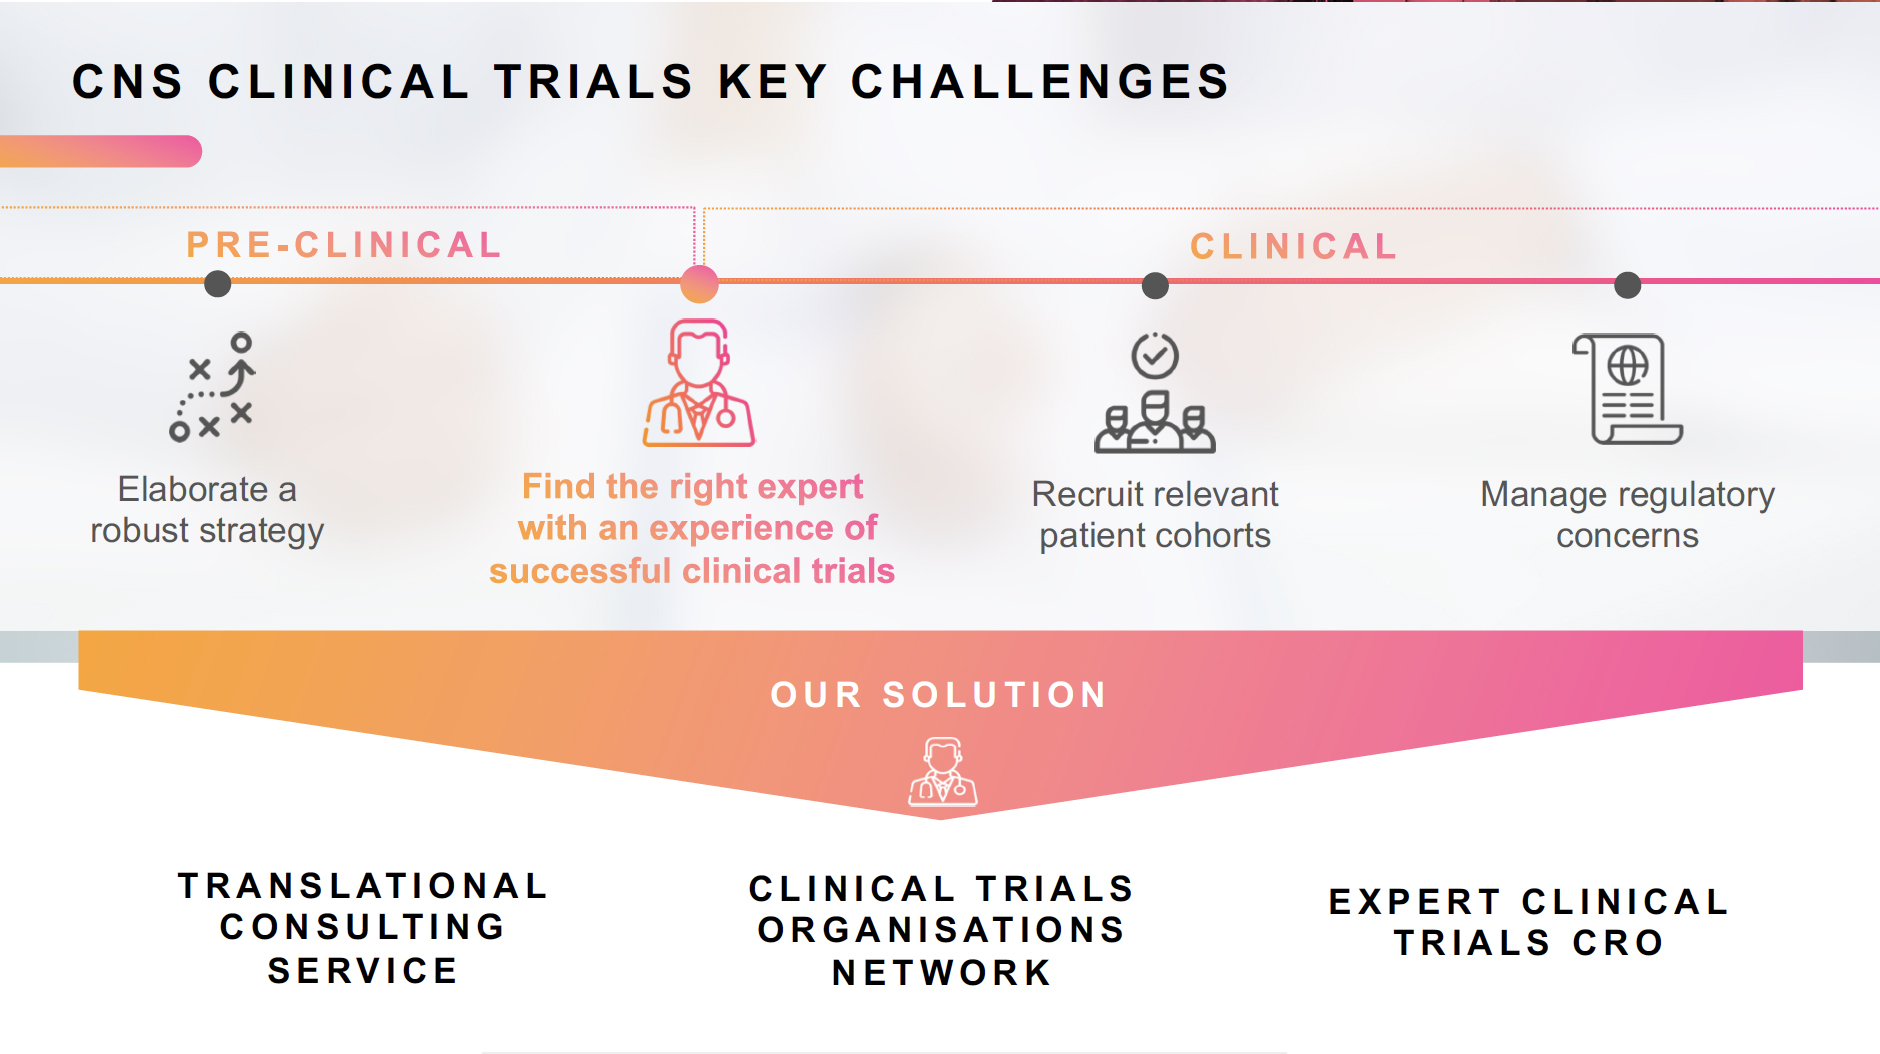 Translational consulting offer